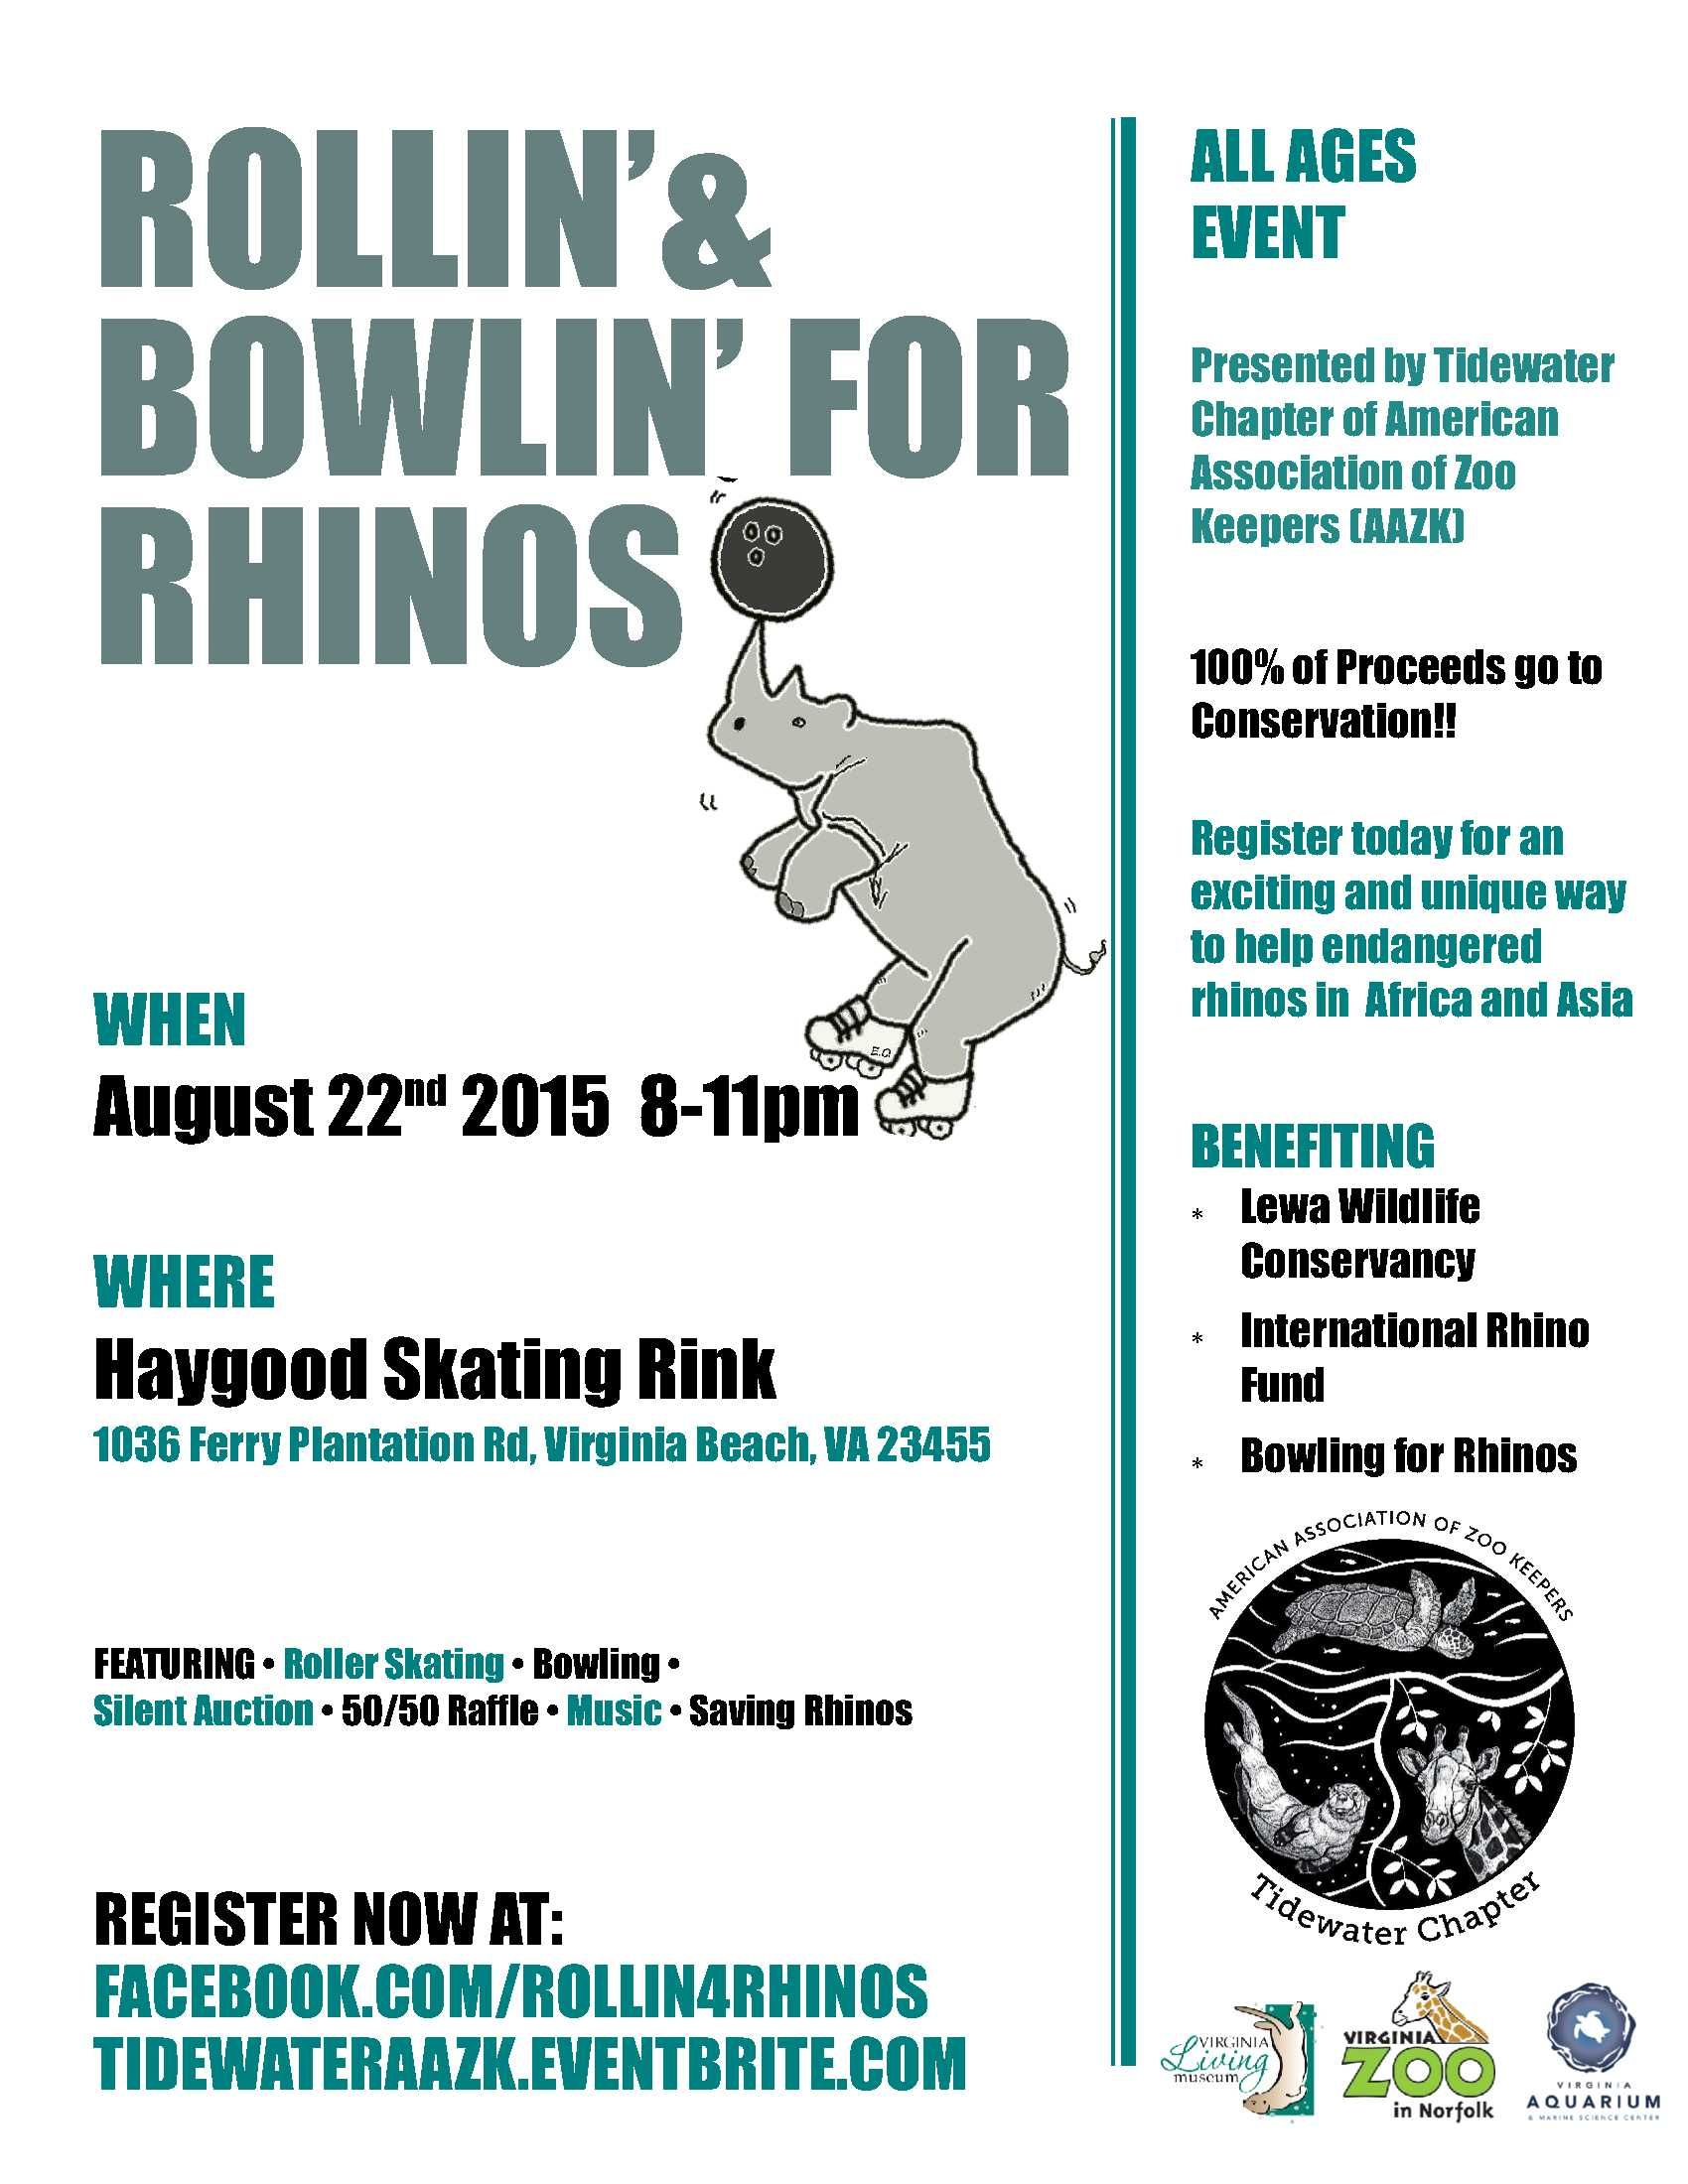 Rollin Bowlin For Rhinos With Images Event Organization Conservation Rhino